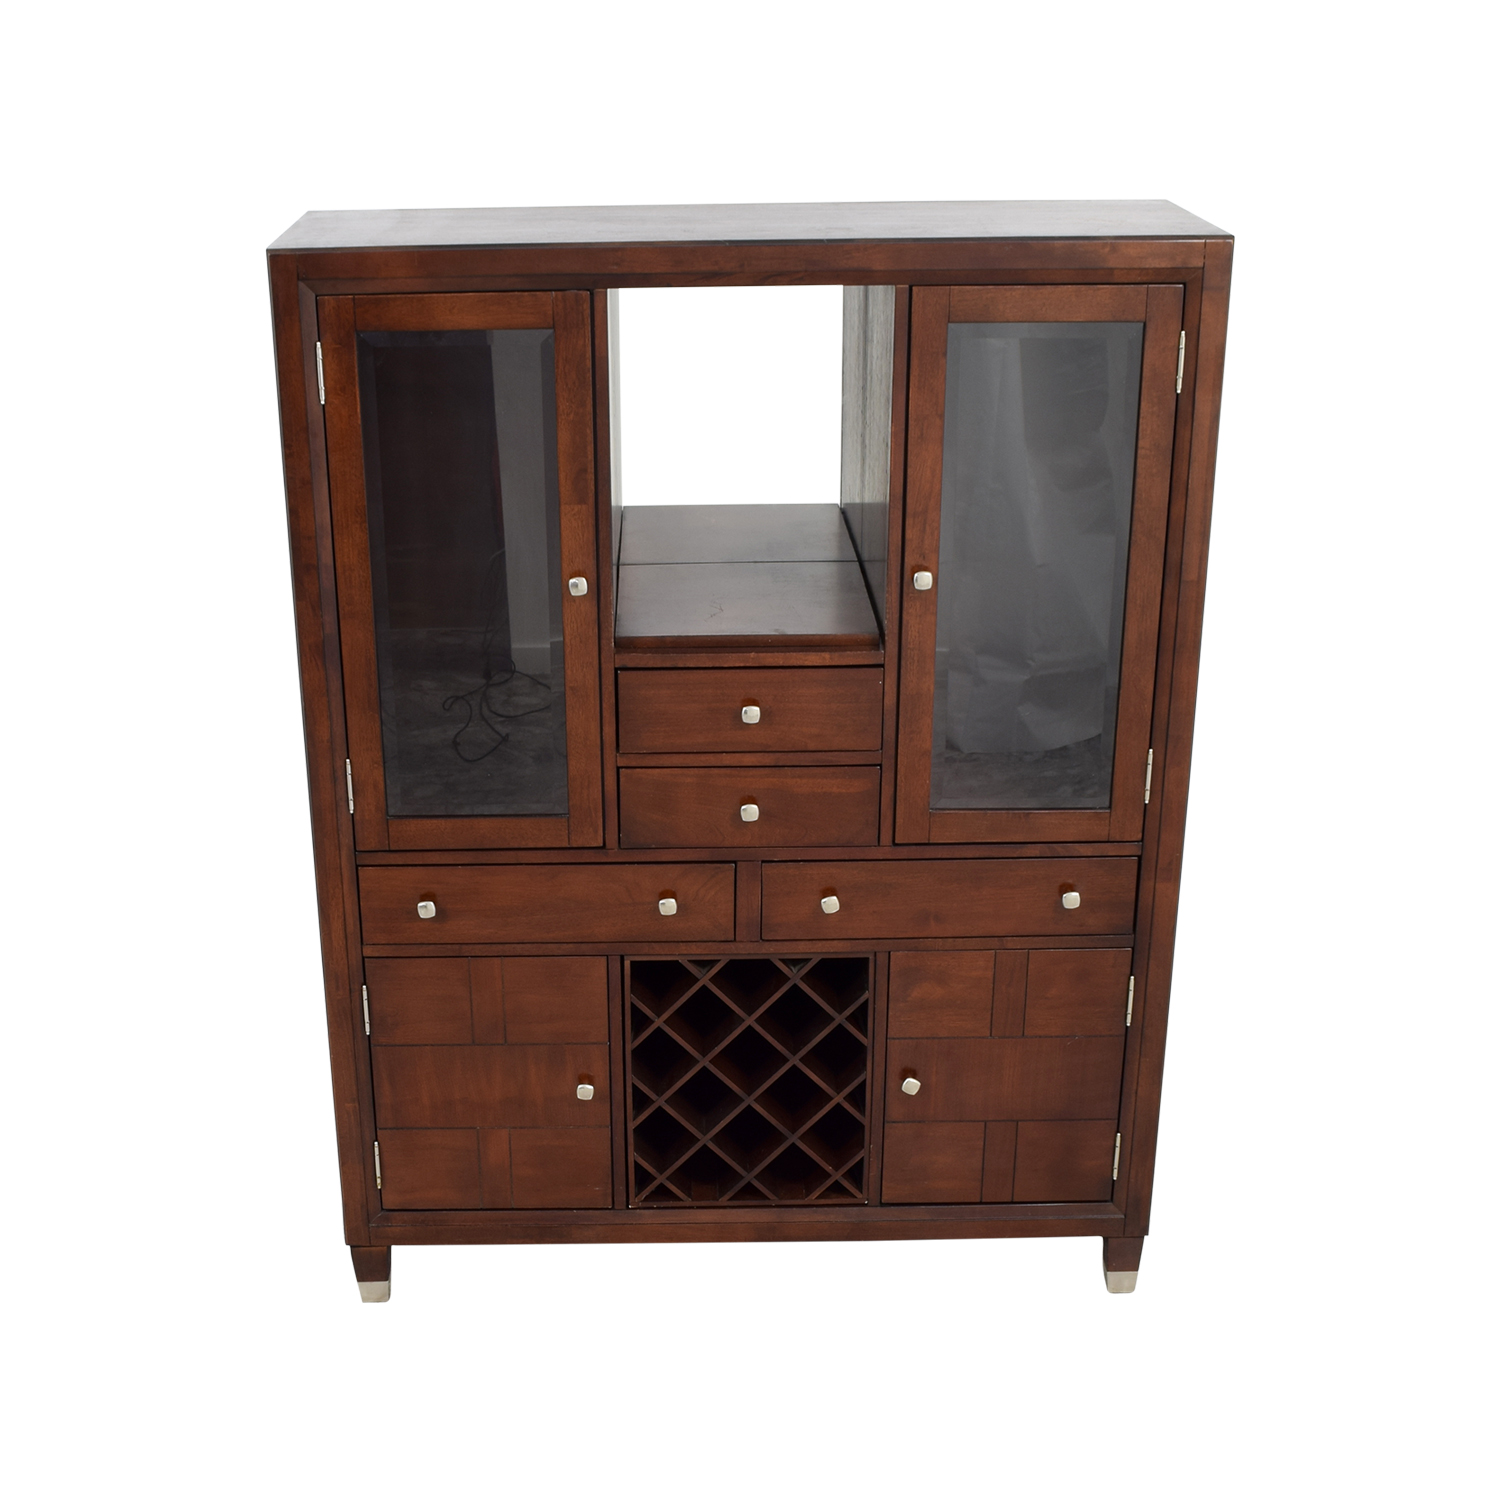 Broyhill Broyhill Curio China Cabinet second hand